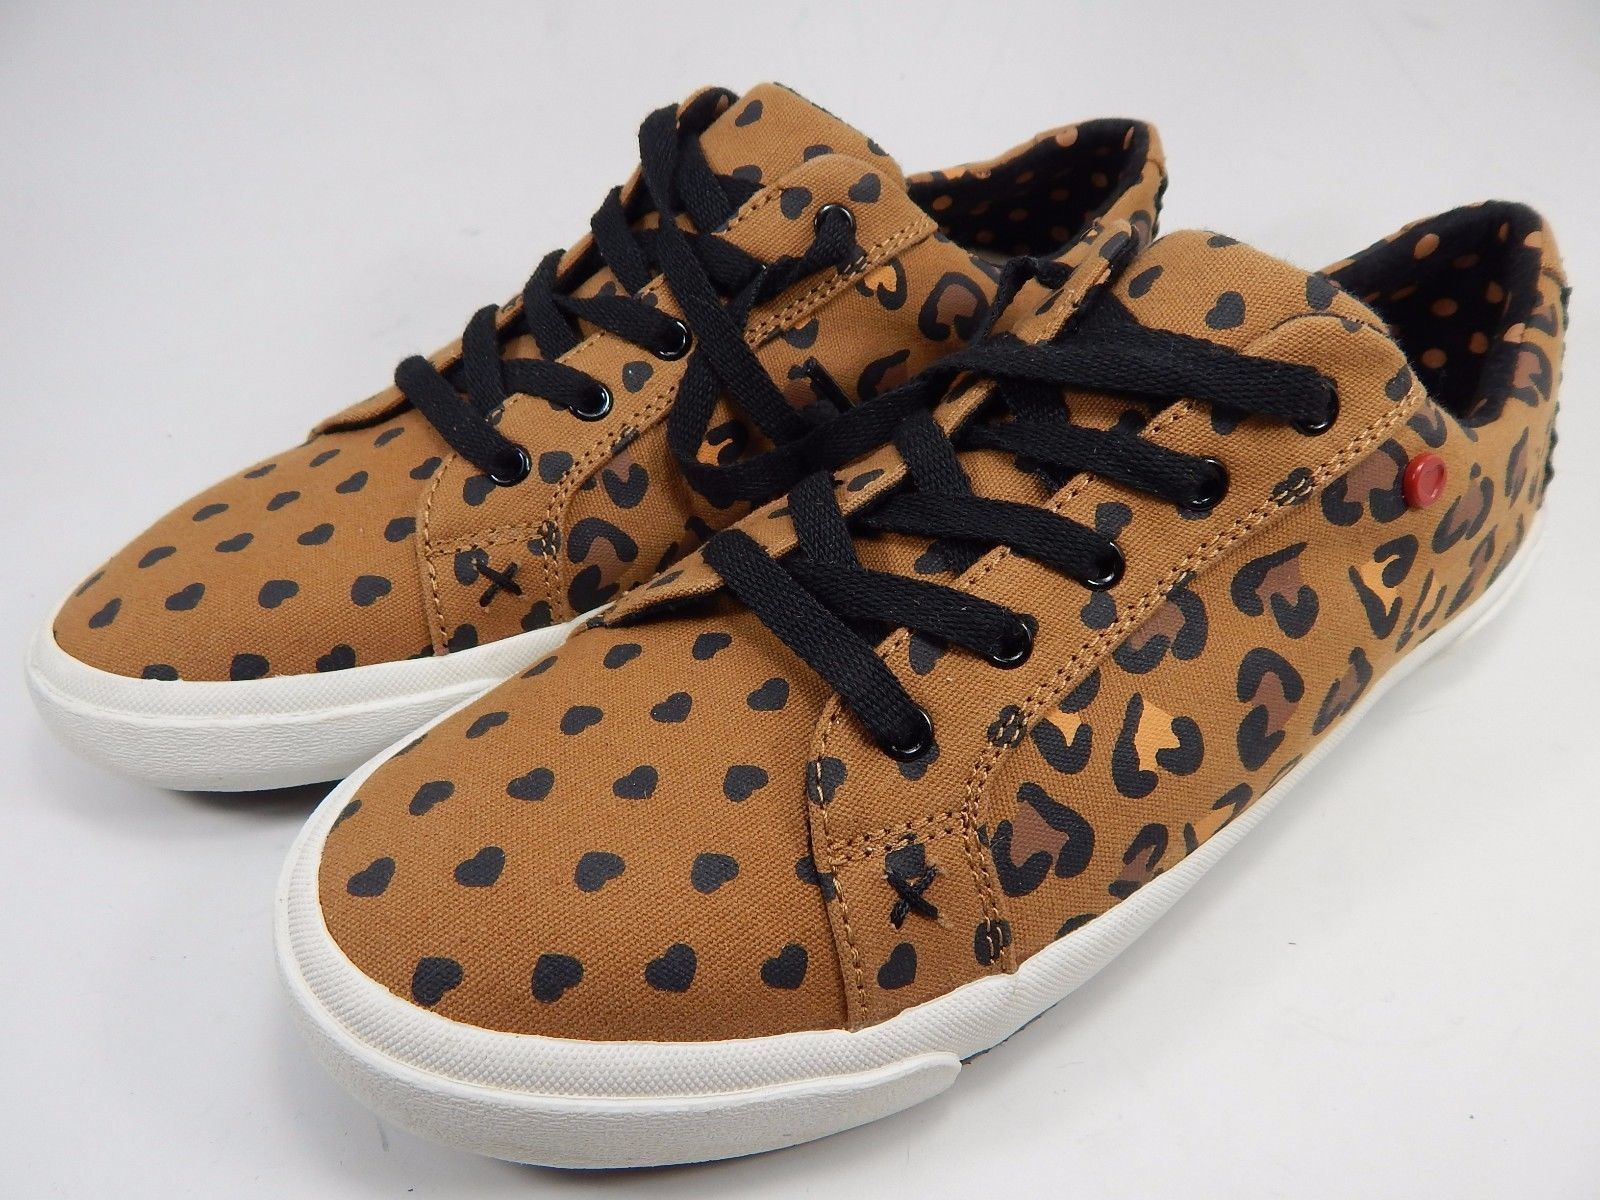 UGG I Heart Lace Up Cheetah Sneakers Shoes Women's Size 7 M (B) Brown 1009490